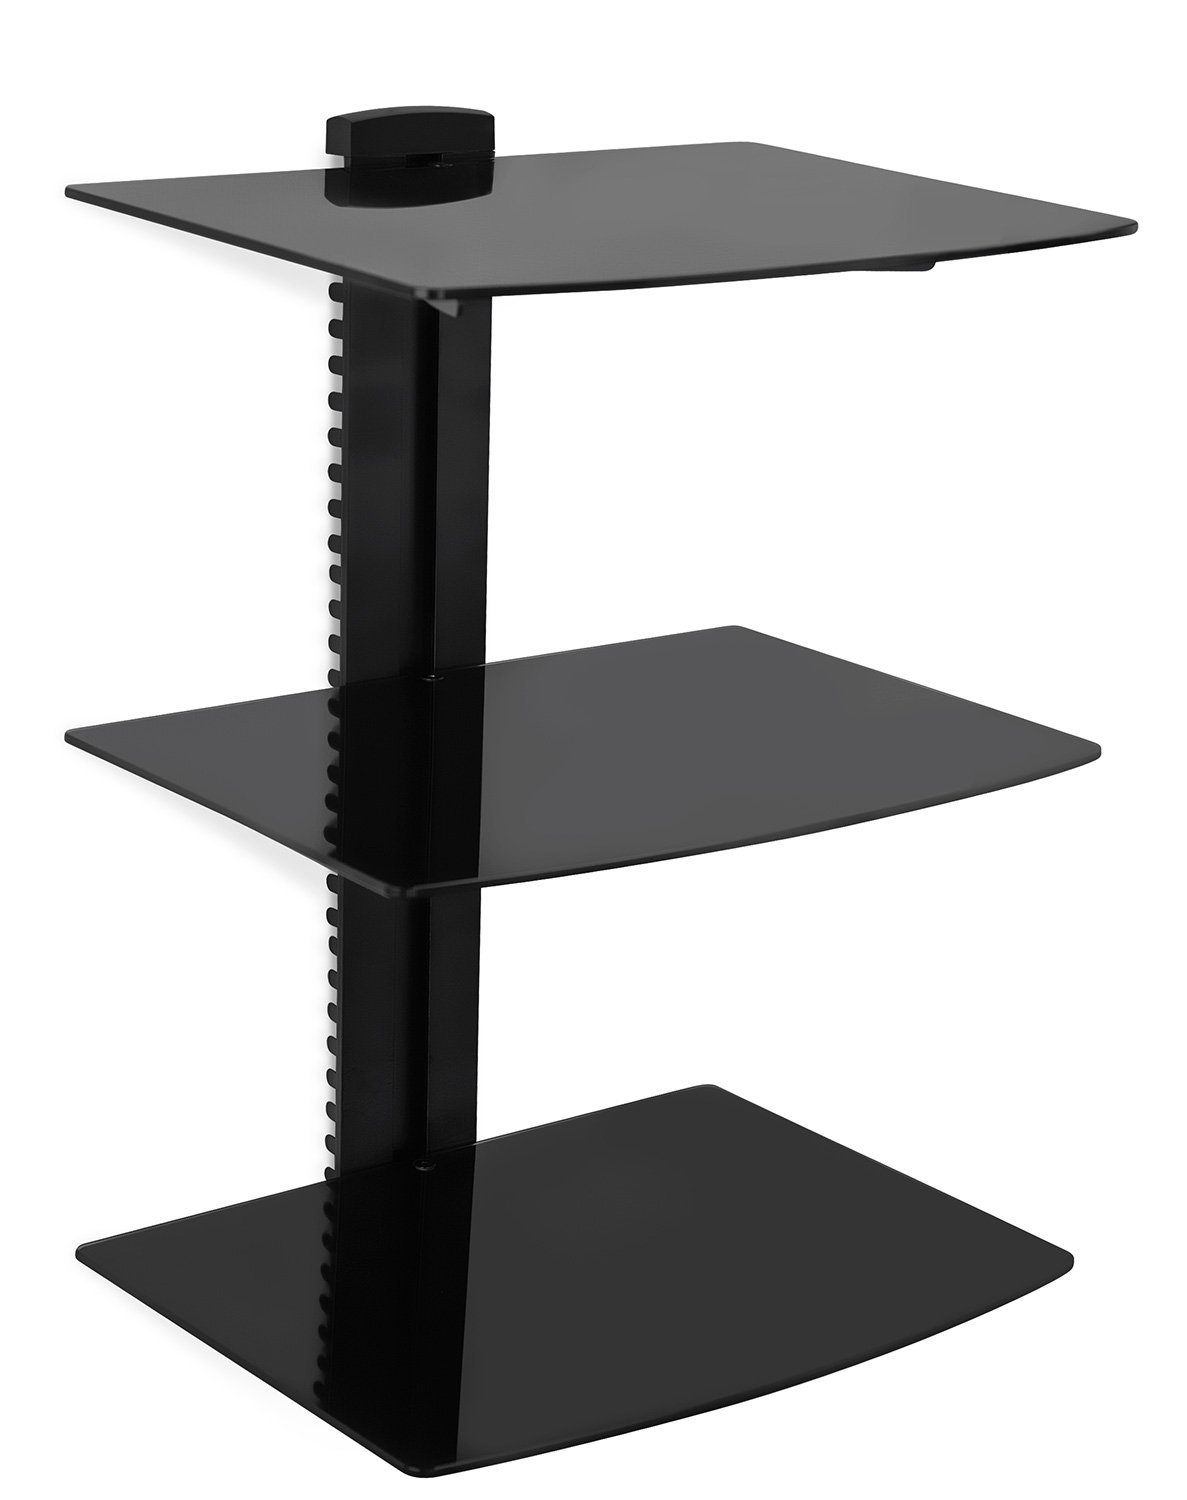 Amazon Mount It Wall Mounted Av Component Shelving System Pertaining To Black Glass Shelves Wall Mounted (View 12 of 15)